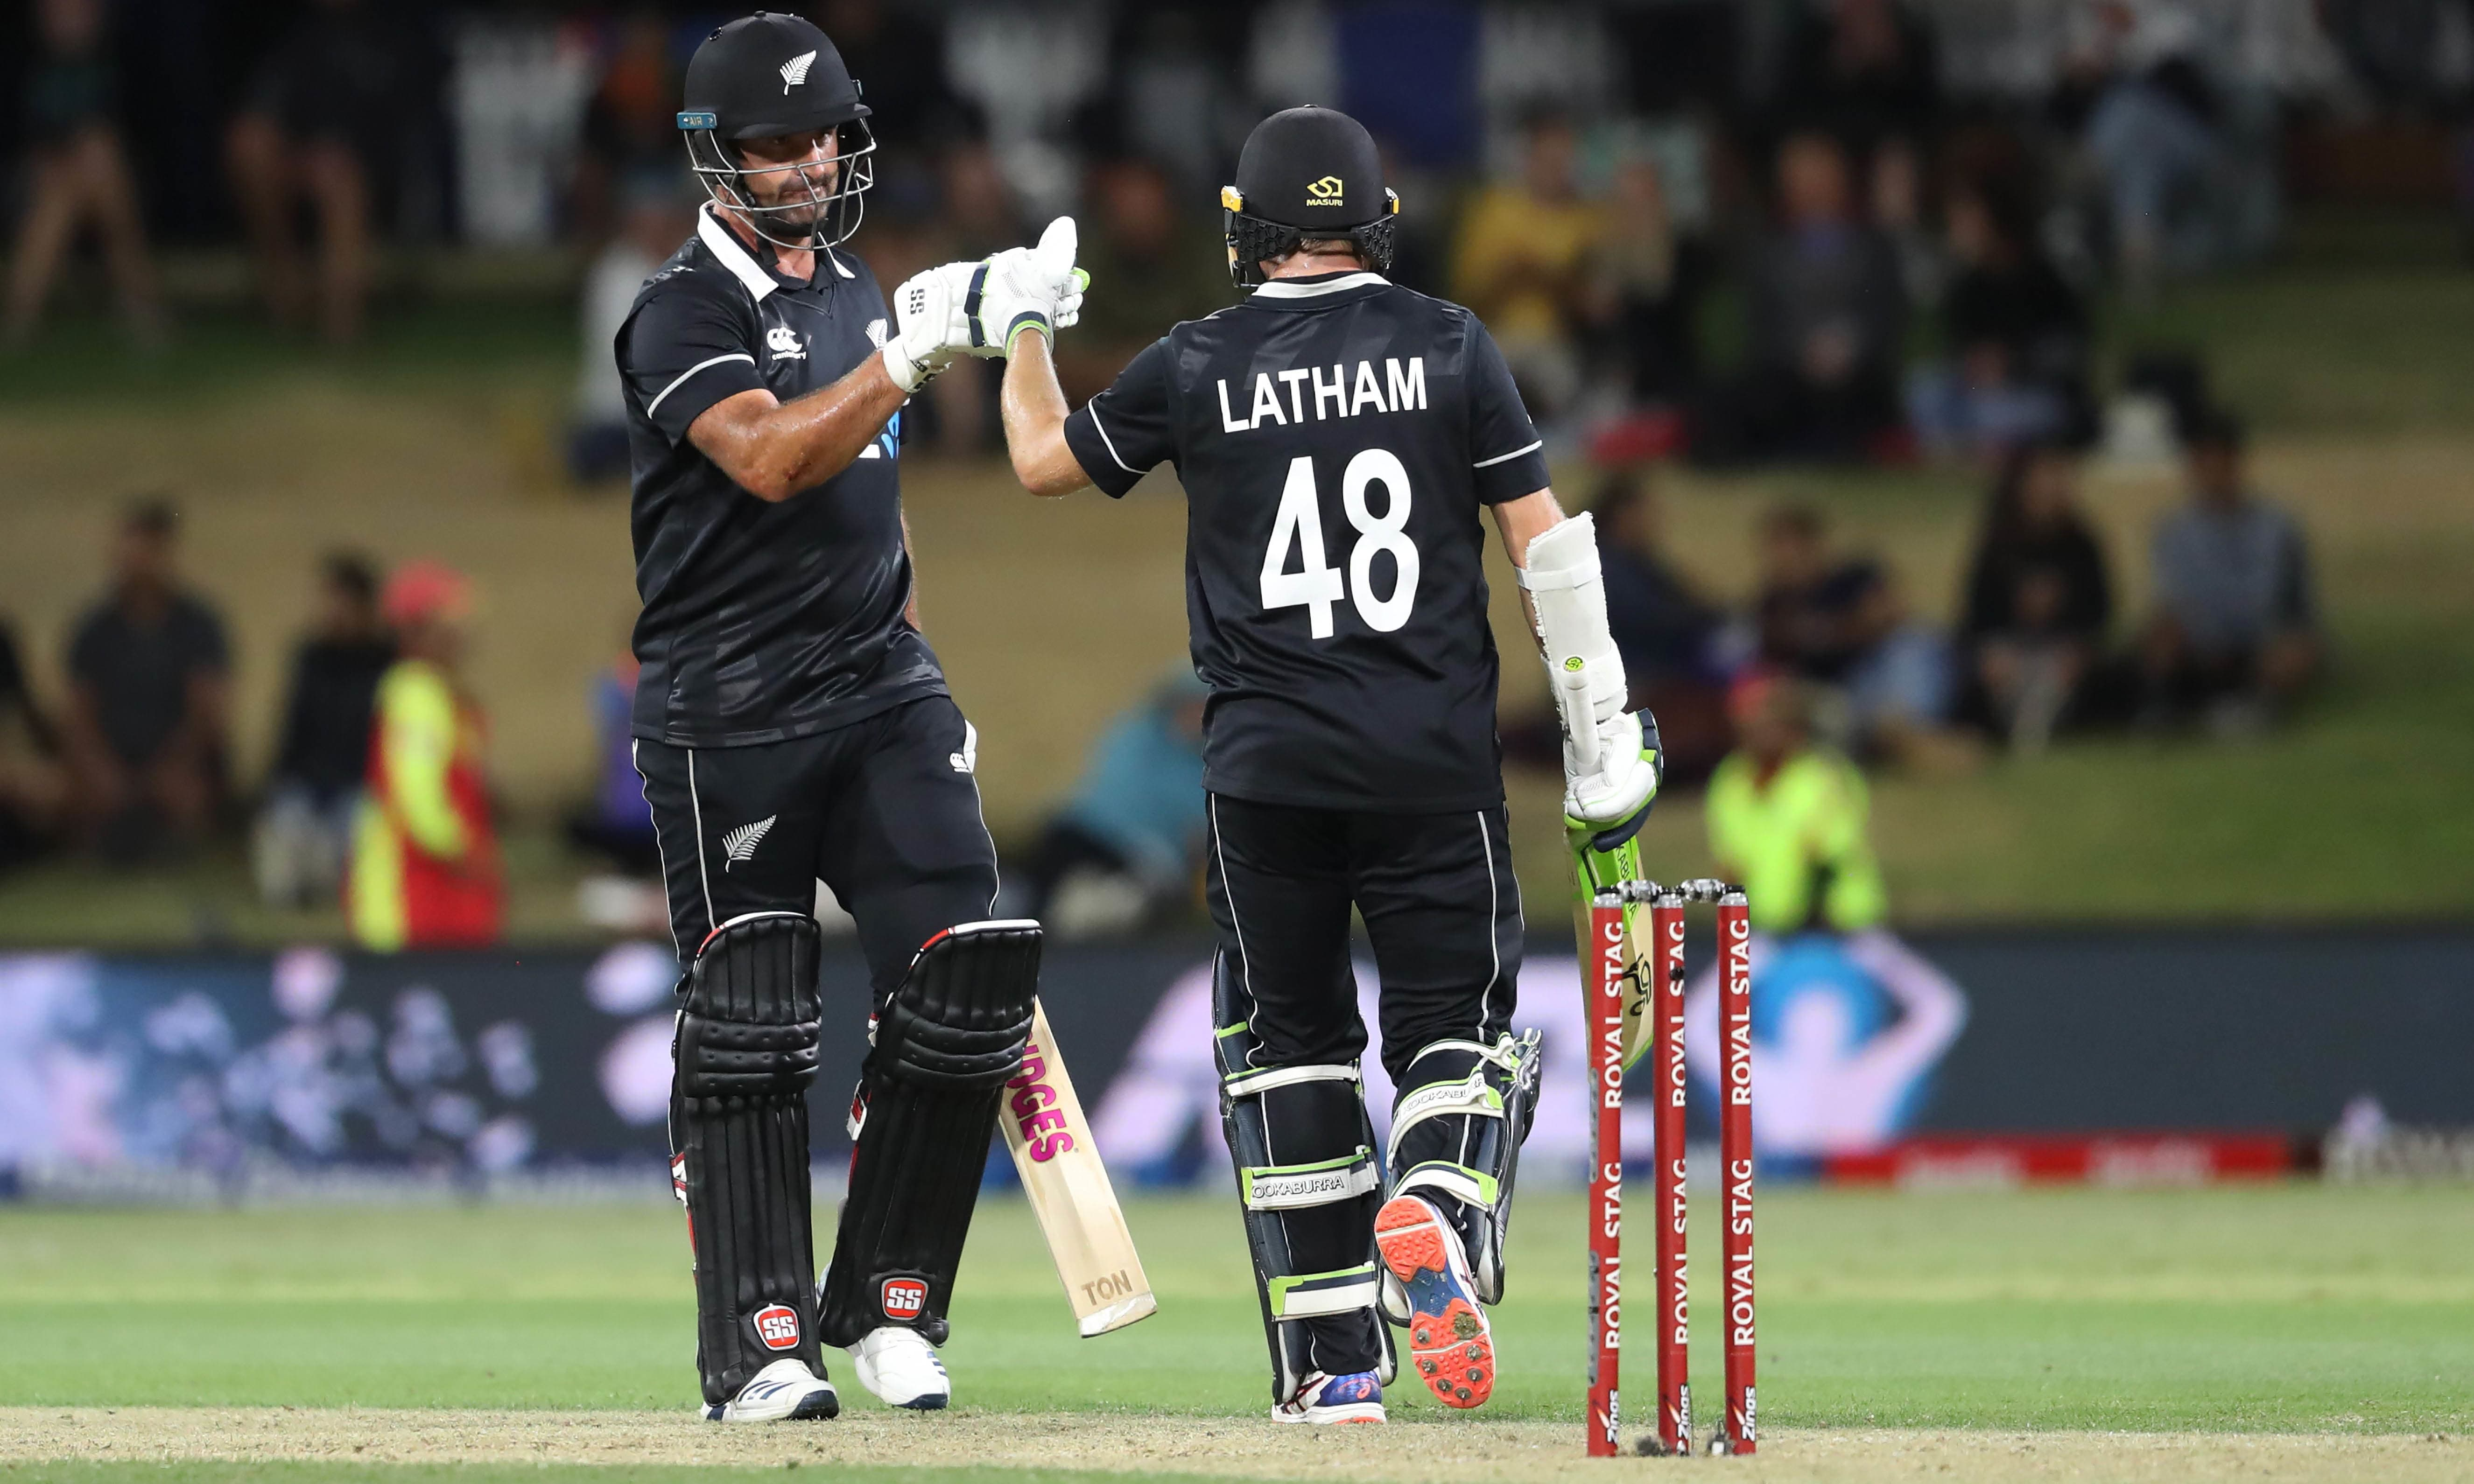 New Zealand's Colin de Grandhomme (L) and Tom Latham react during the third one-day international cricket match between New Zealand and India at the Bay Oval in Mount Maunganui on Feb 11. — AFP